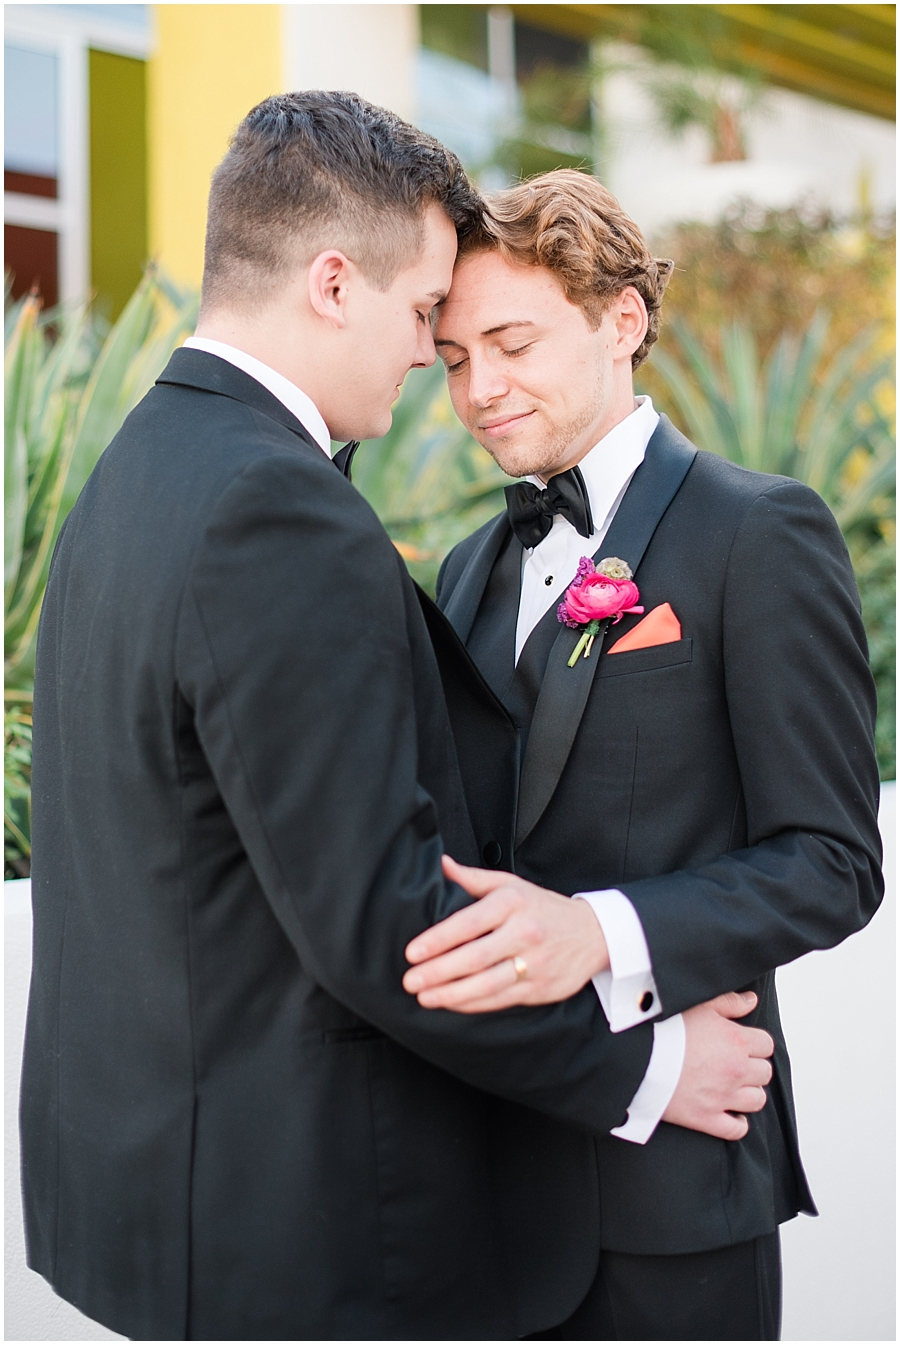 Groom models Zach Jones & Seth Powers wearing tuxes provided by Celebrity Tux & Tails. Photos by Jade Min Photography.